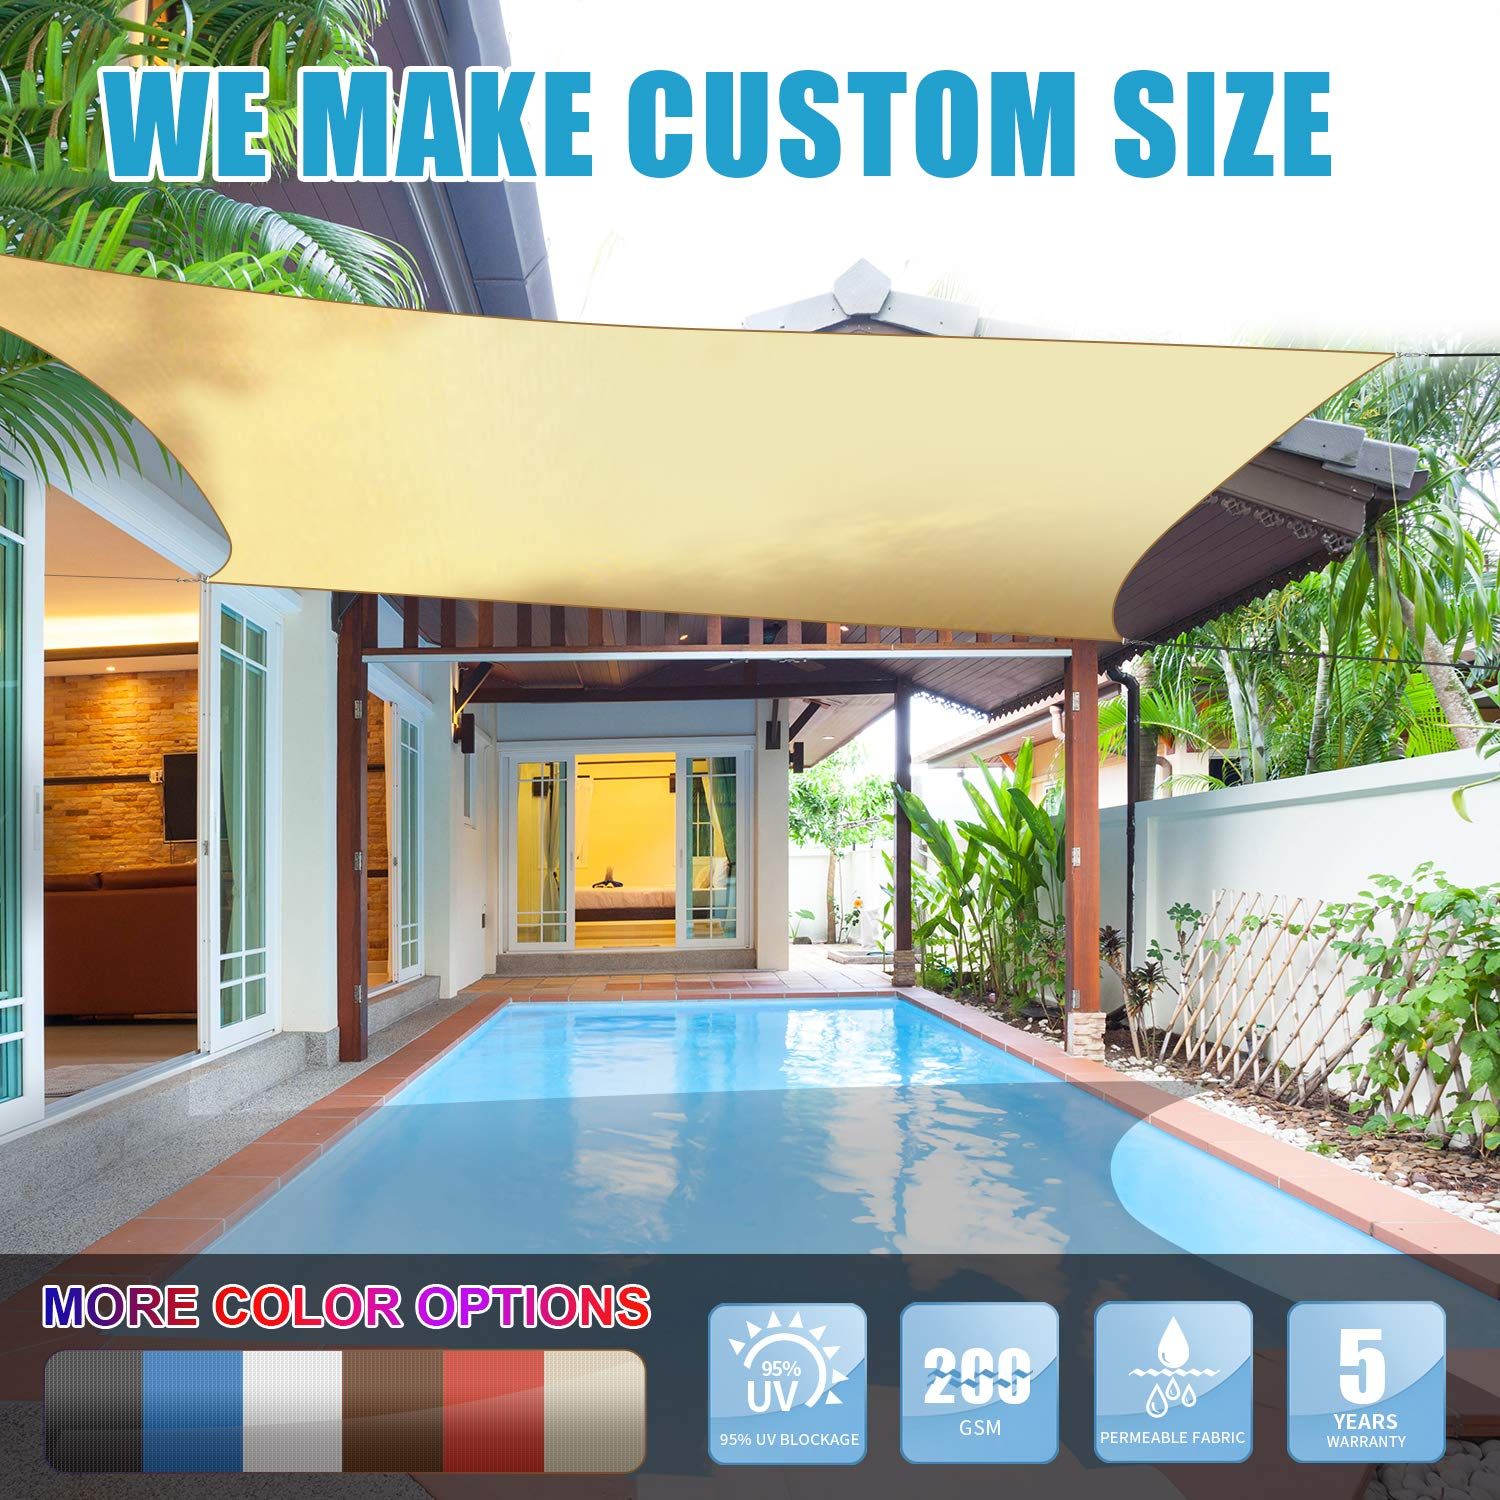 Amgo 16 x 16 Beige Square Sun Shade Sail Canopy Awning, 95 UV Blockage, Water Air Permeable, Commercial and Residential, for Patio Yard Pergola, 5 Years Warranty Available for Custom Sizes